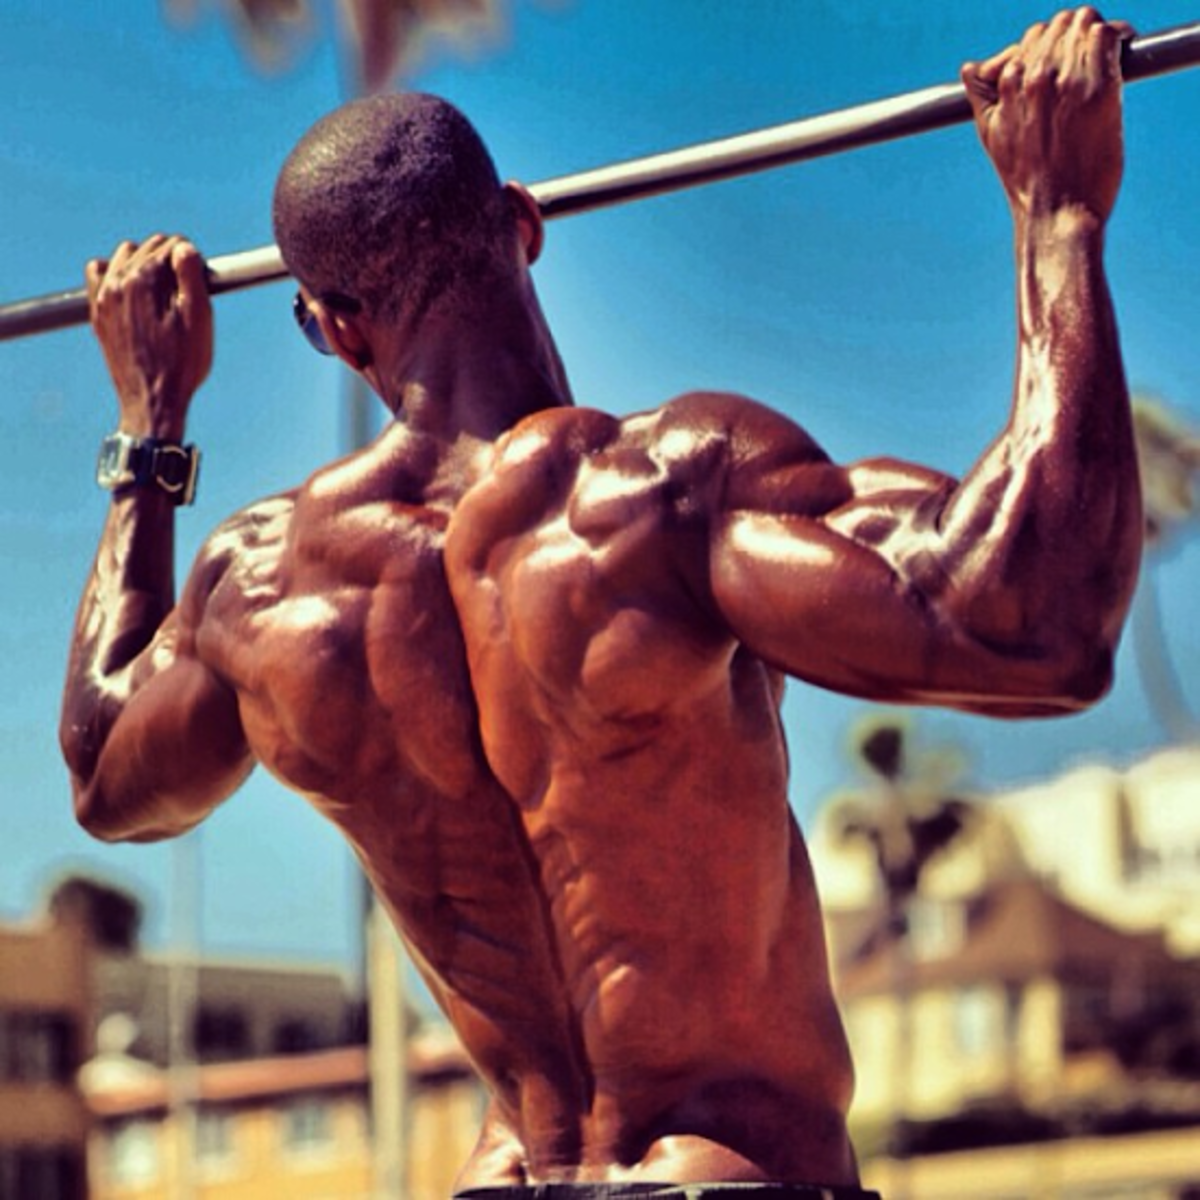 Developing a Lean and Muscular Back